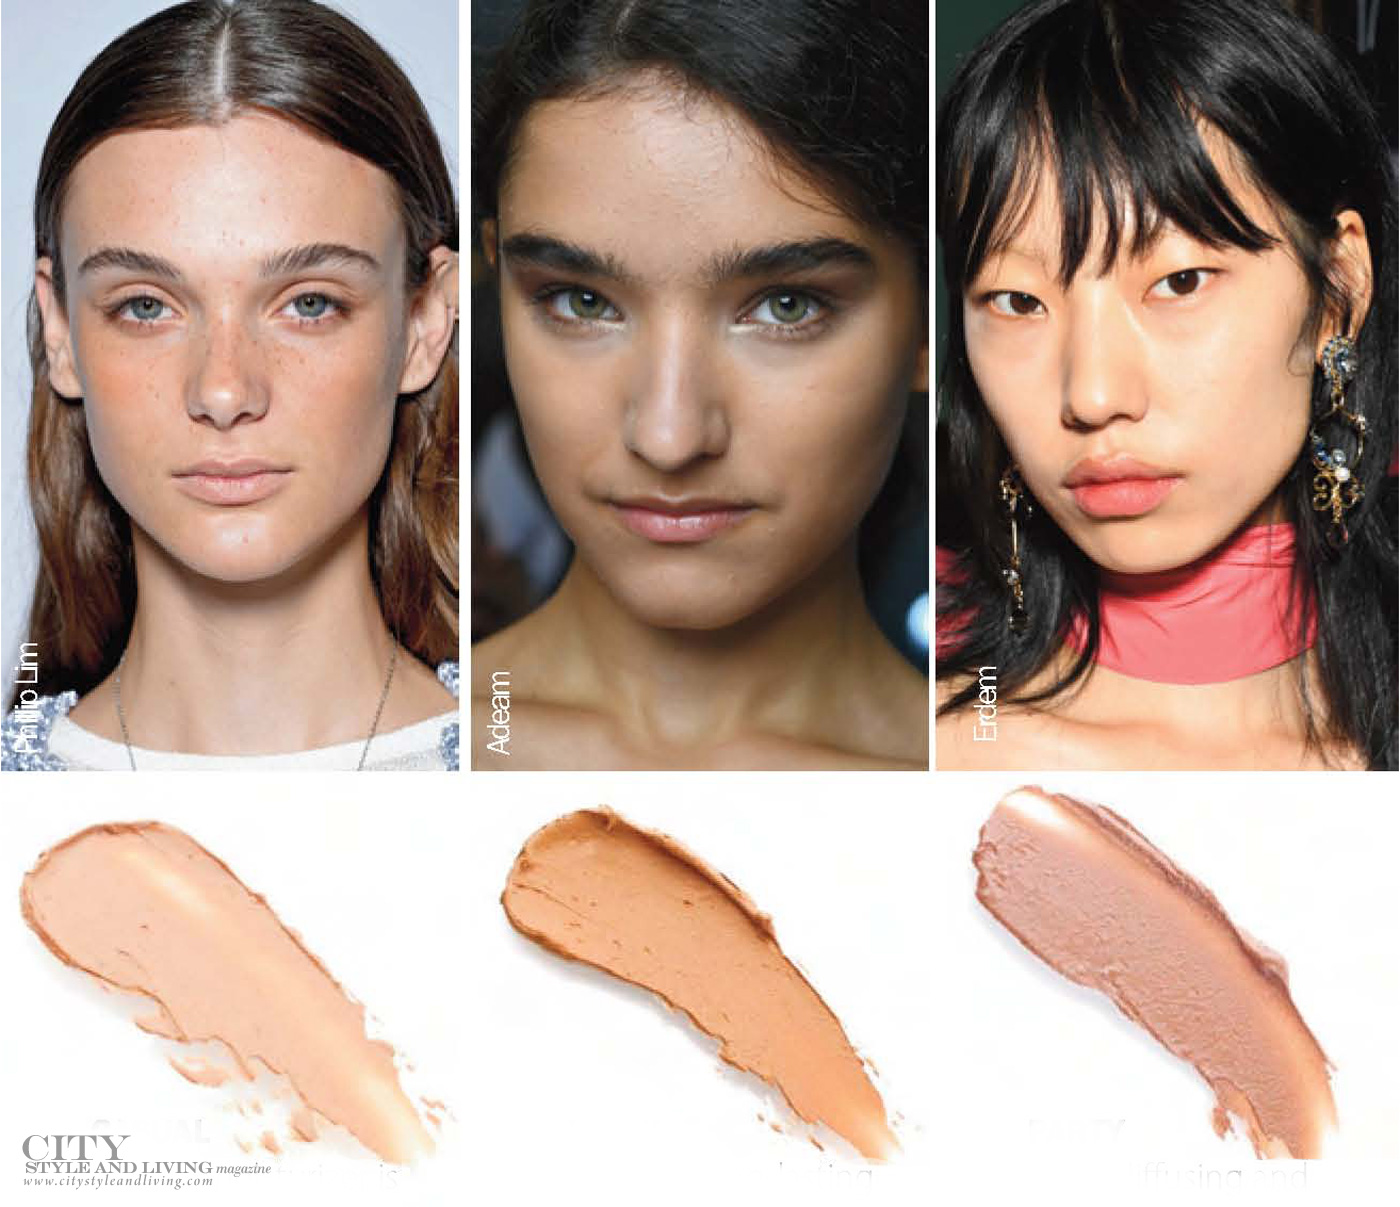 City Style and Living Magazine Spring 2019 Beauty Lessons from the runway makeup for every skin type